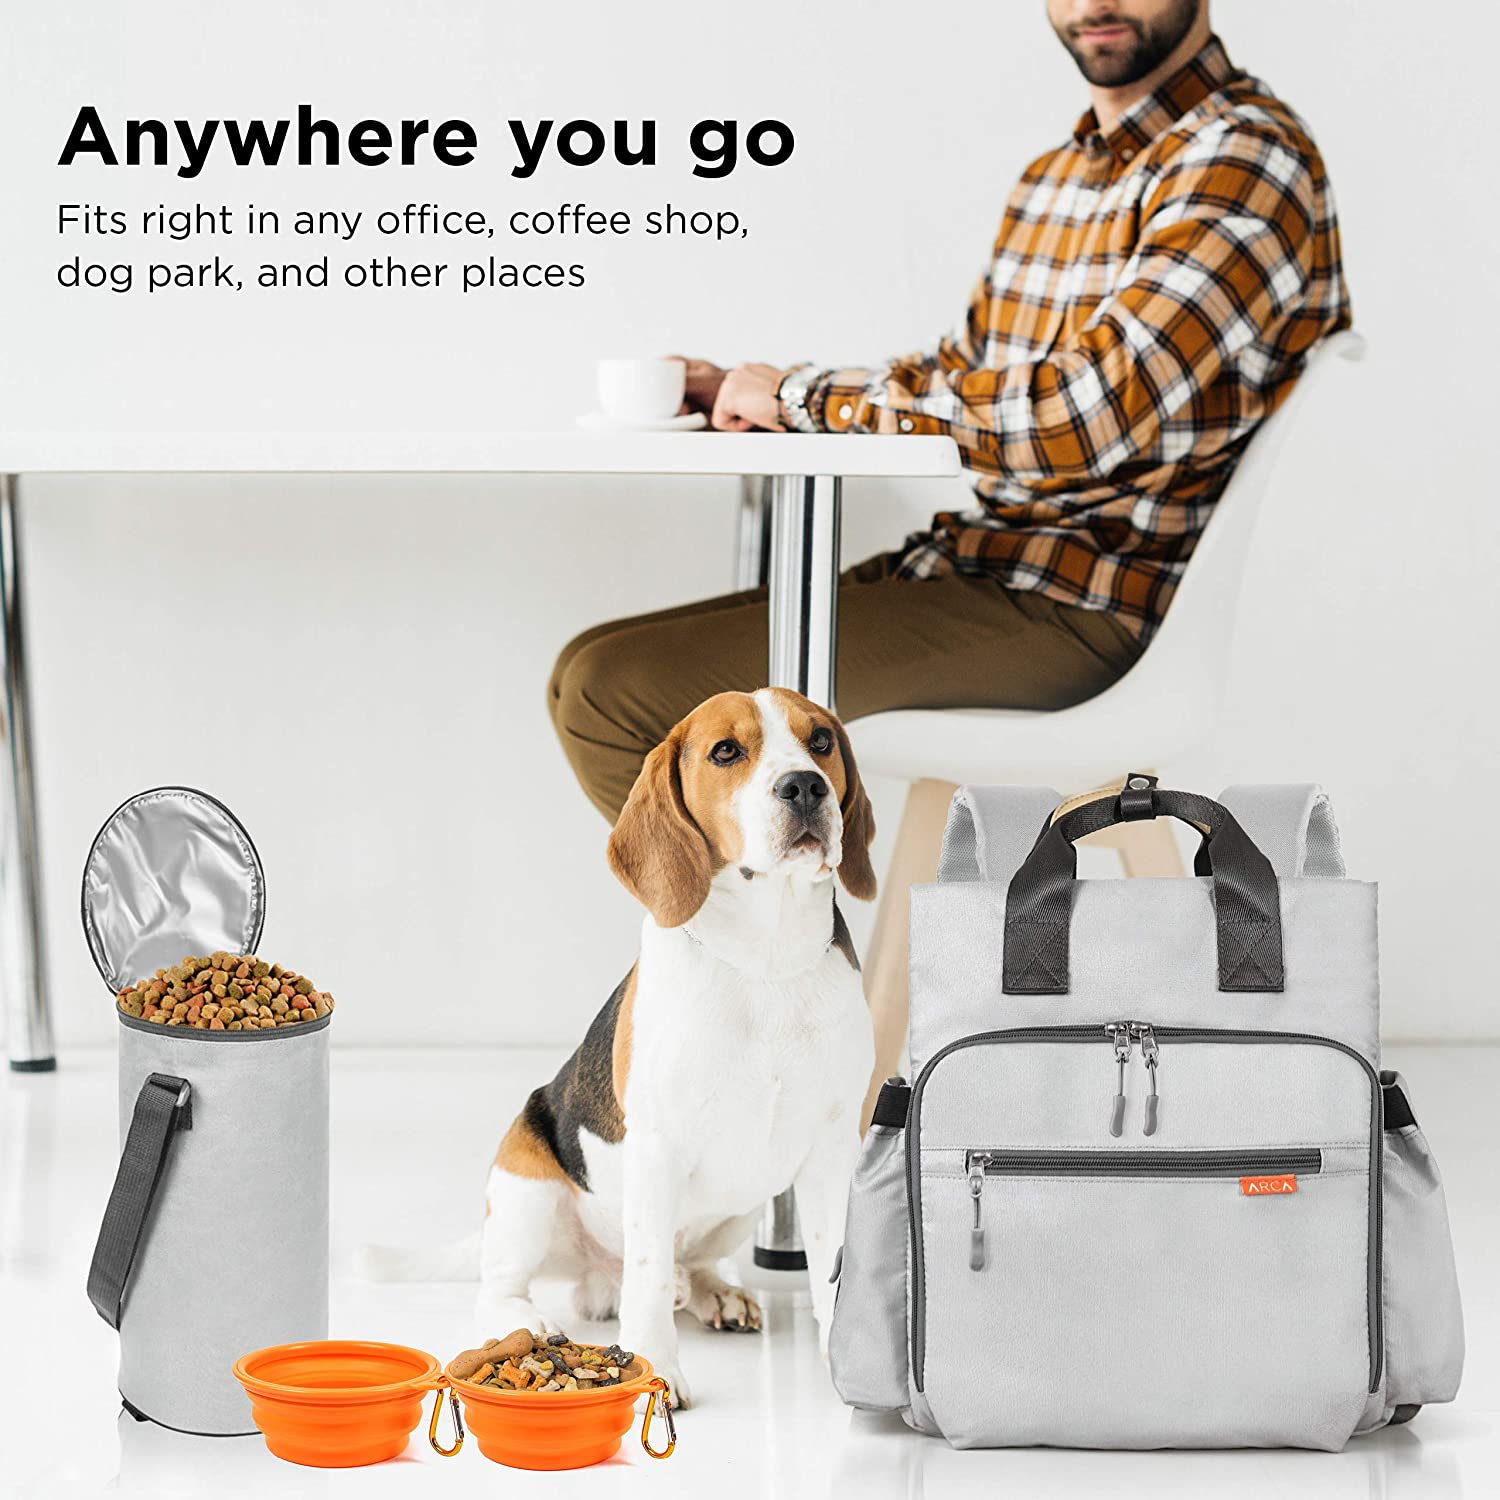 Daily Deals On Pet Essentials Every Animal Lover Should Have - Pet Travel Bag